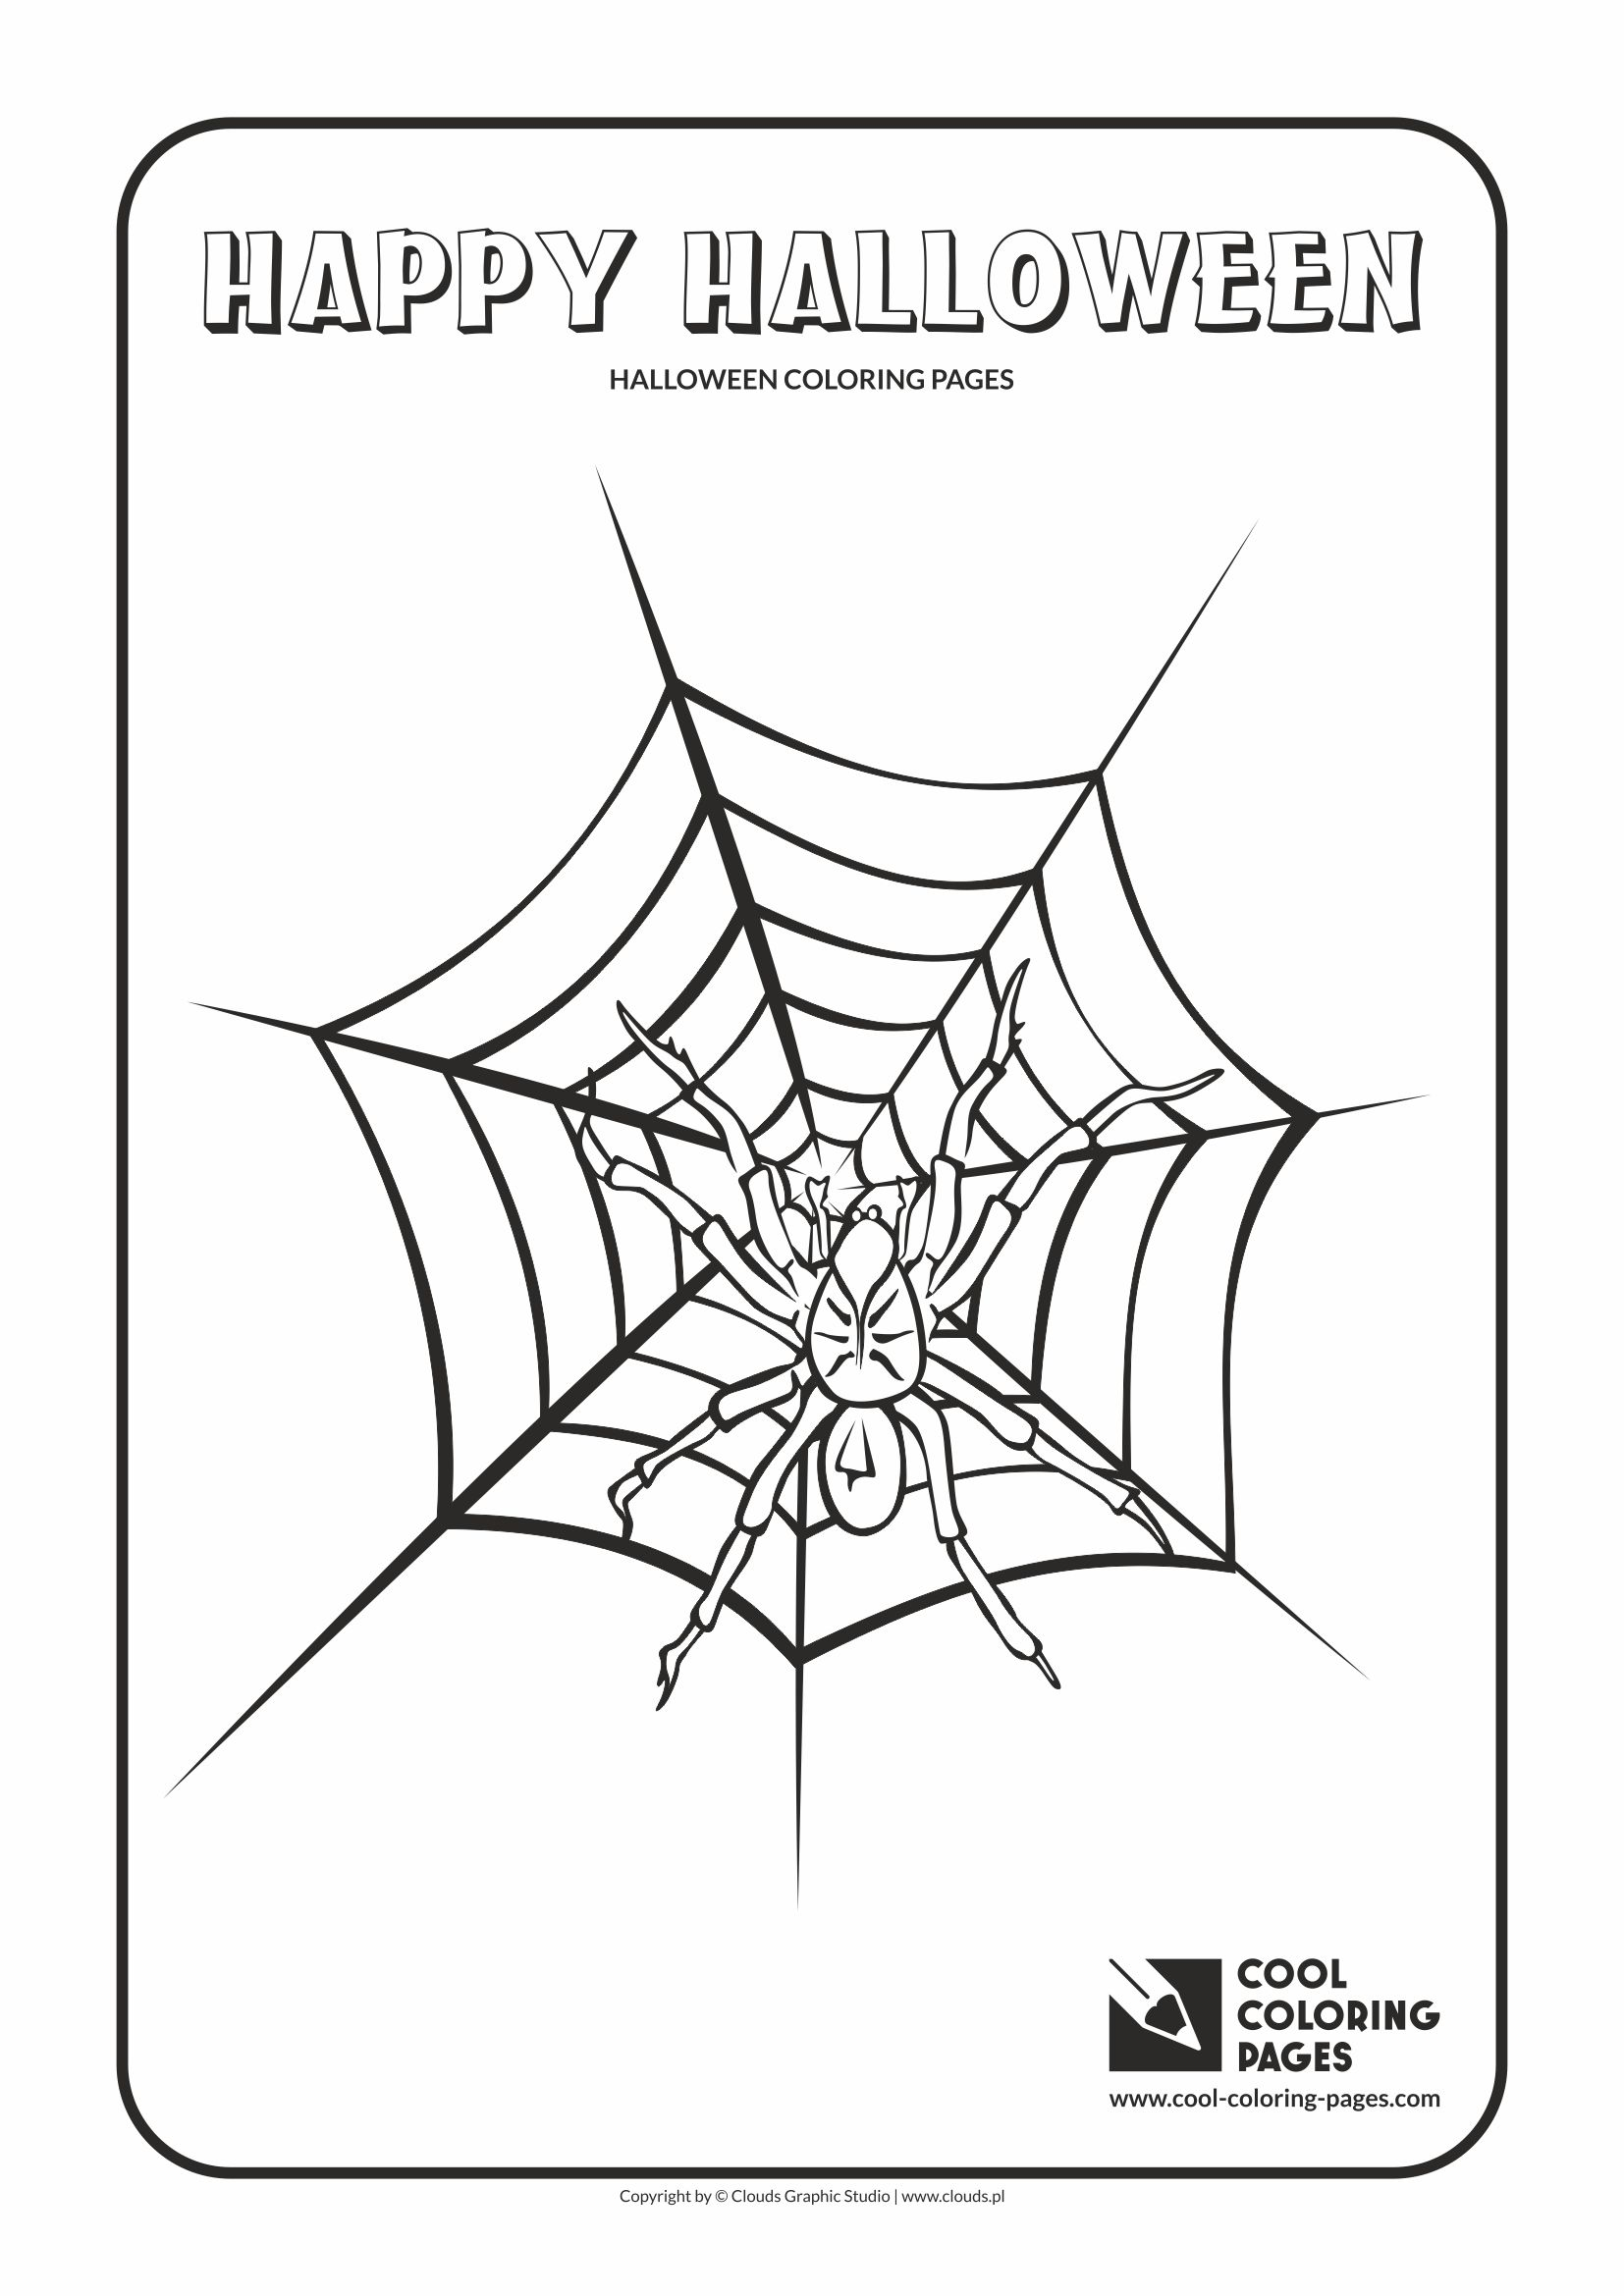 Cool Coloring Pages Home Cool Coloring Pages Free educational